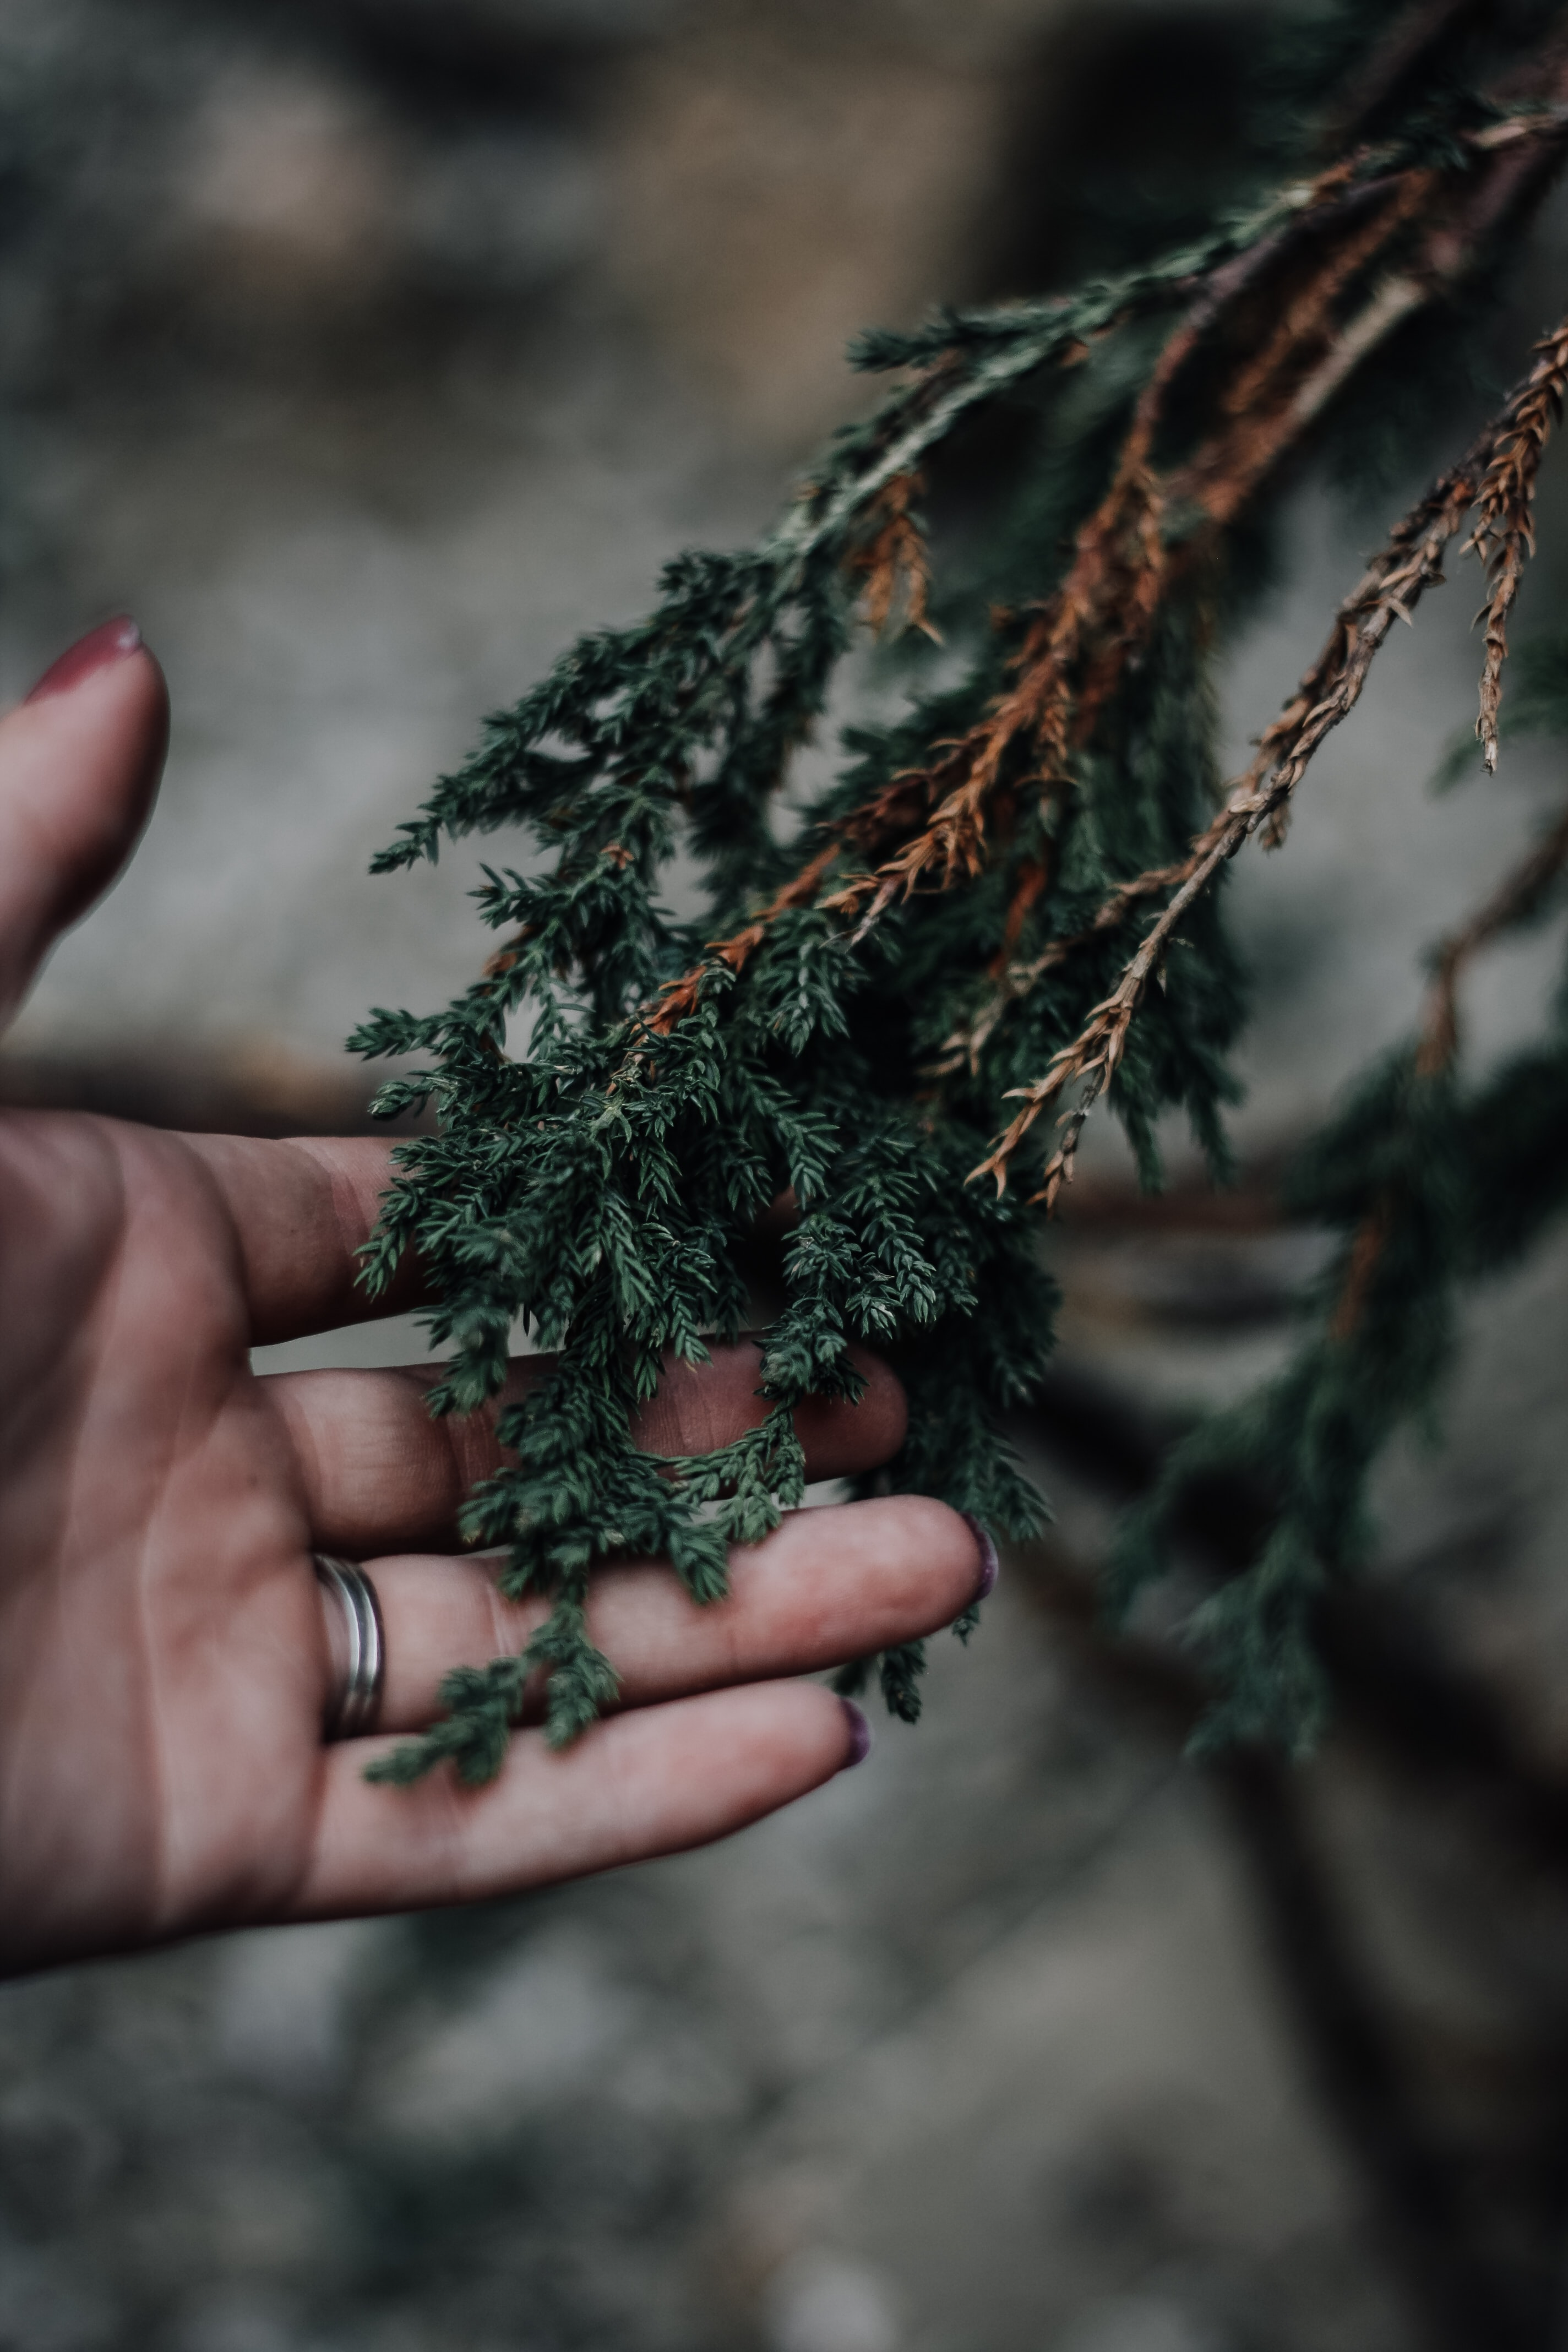 person holding green leafed plant